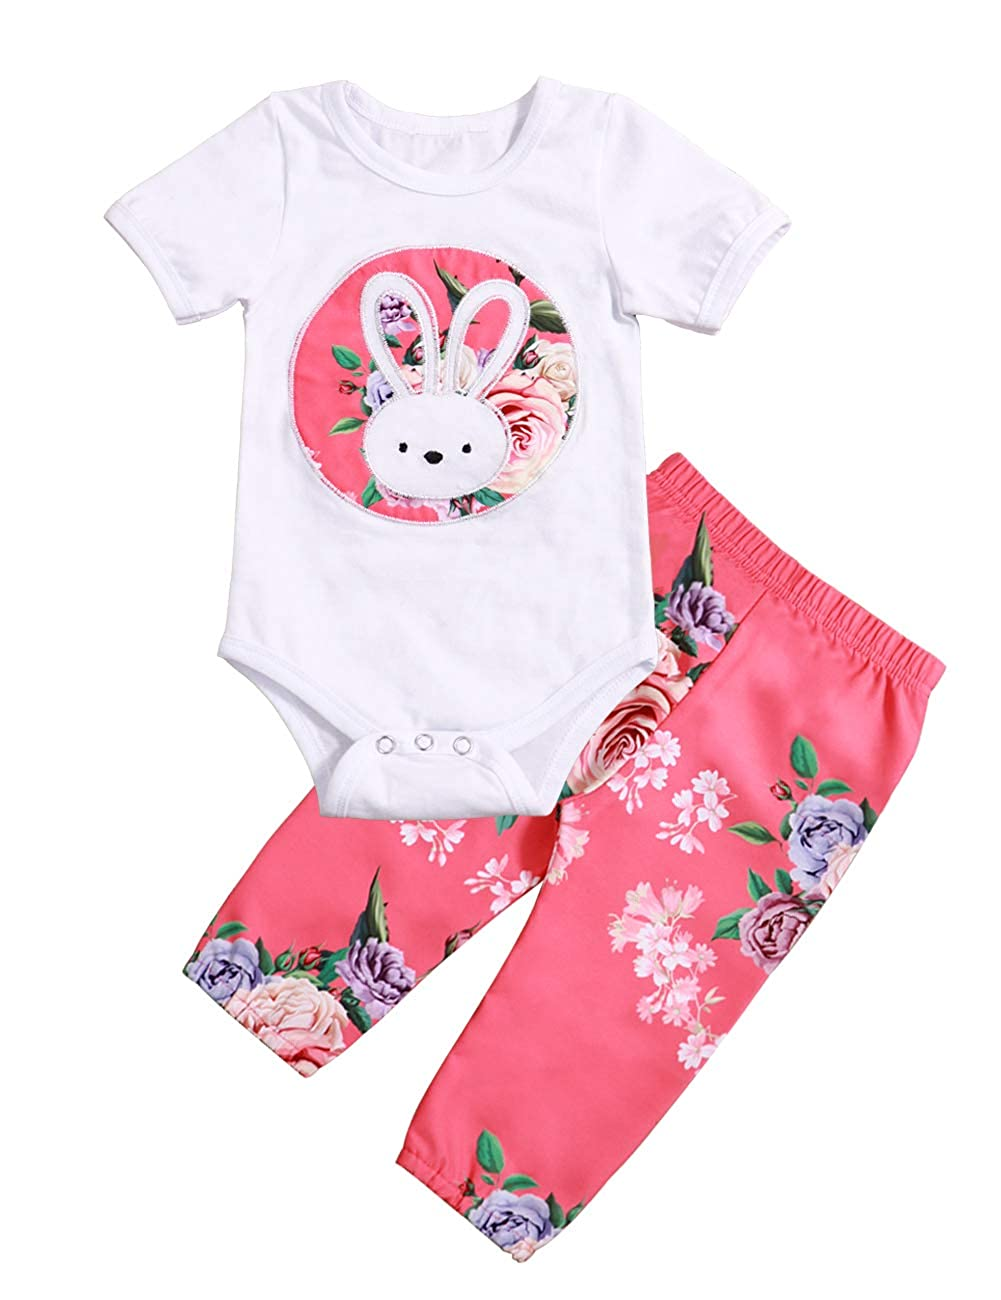 decc8f3047da Amazon.com  My 1st Easter Baby Girls Clothes Bunny Short Sleeve Romper Top  + Floral Pants Outfits Set  Clothing